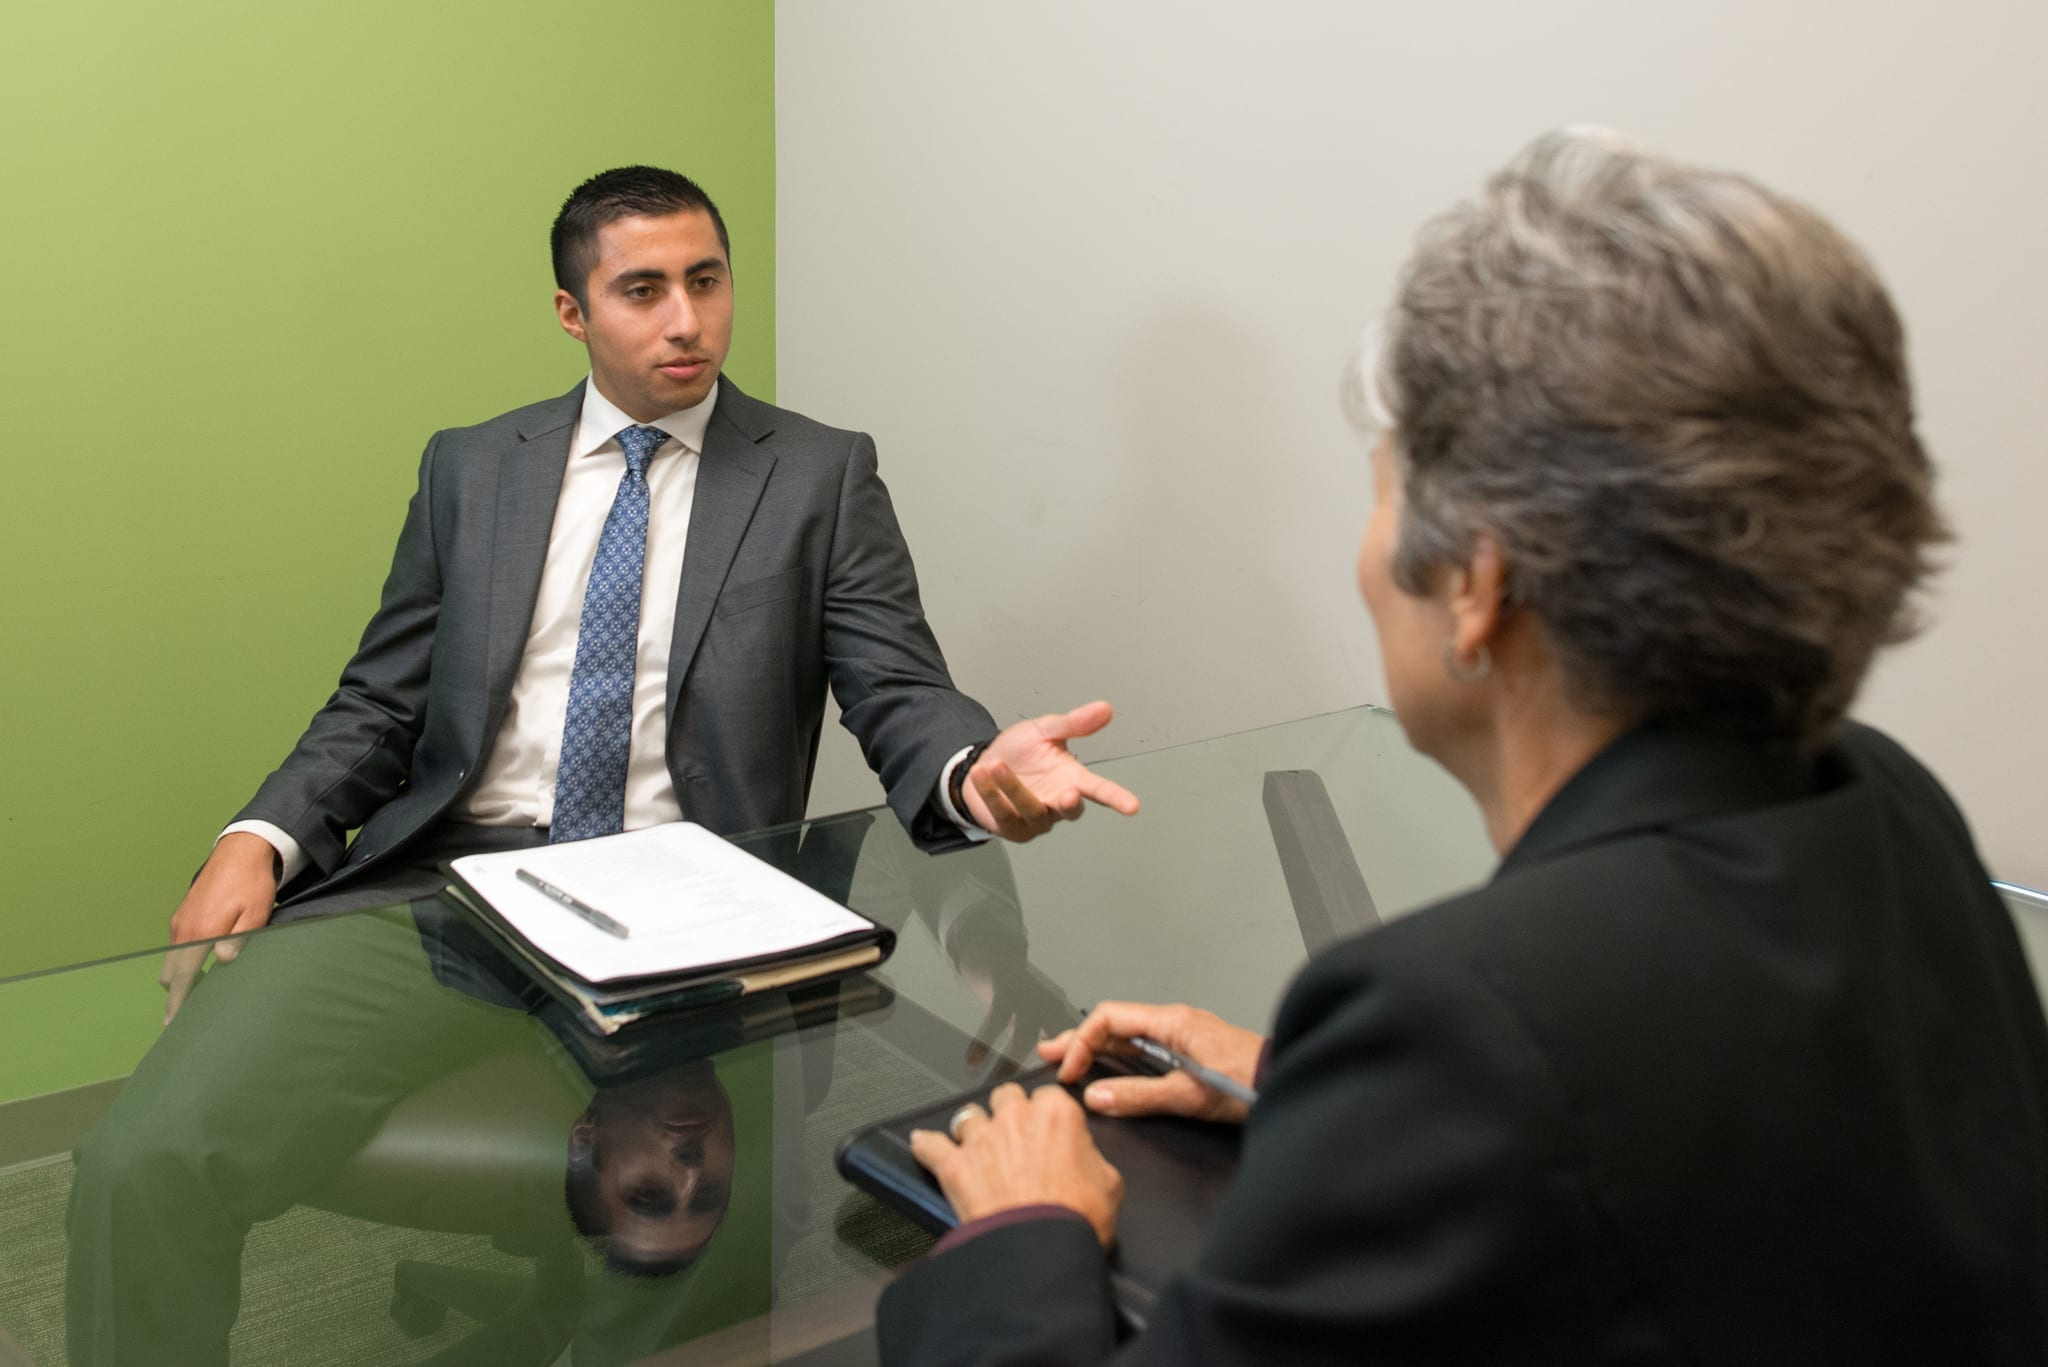 Man on a job interview; image courtesy of Amtec Staffing, via Flickr, CC BY-SA 2.0, no changes.